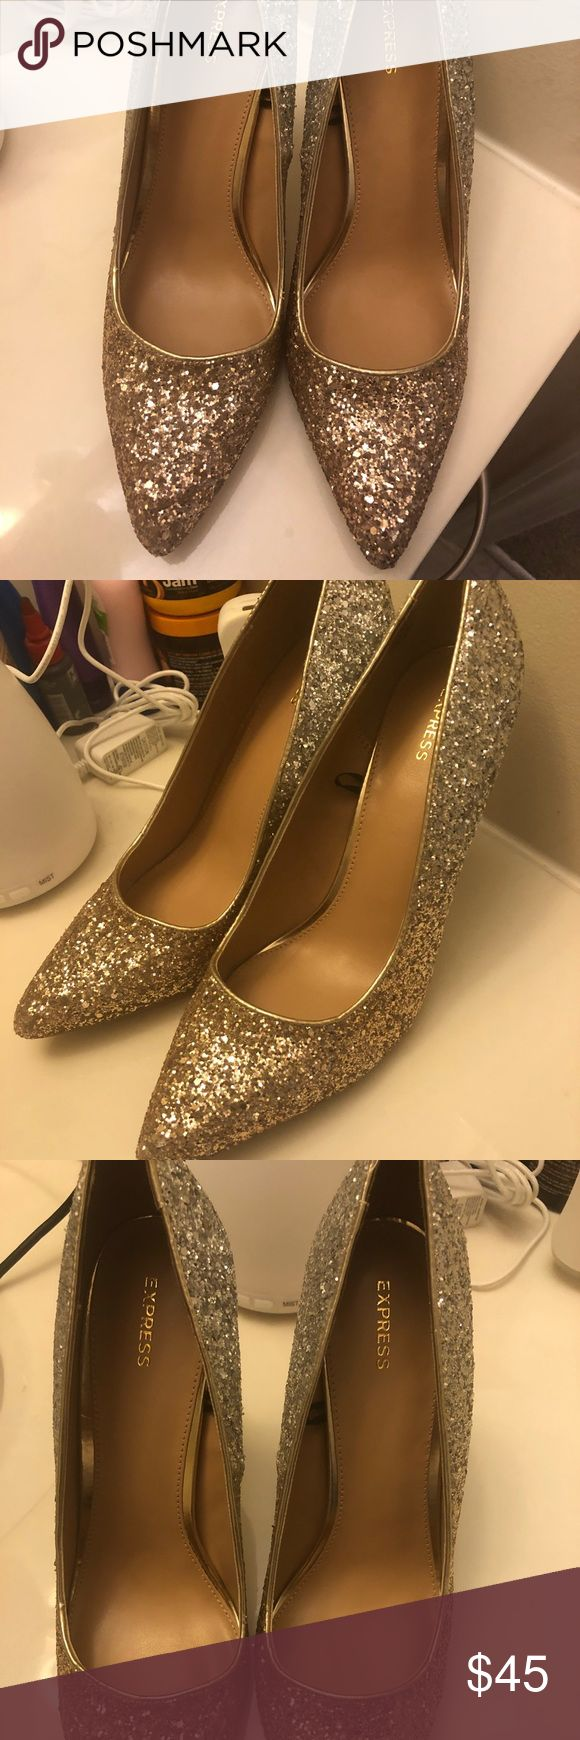 💎💎Ombré Sequins Heels💎💎 New Year ready 💎💎Ombré Sequins Gold Silver heel💎💎 These will definitely make a statement. Worn once Express Shoes Heels